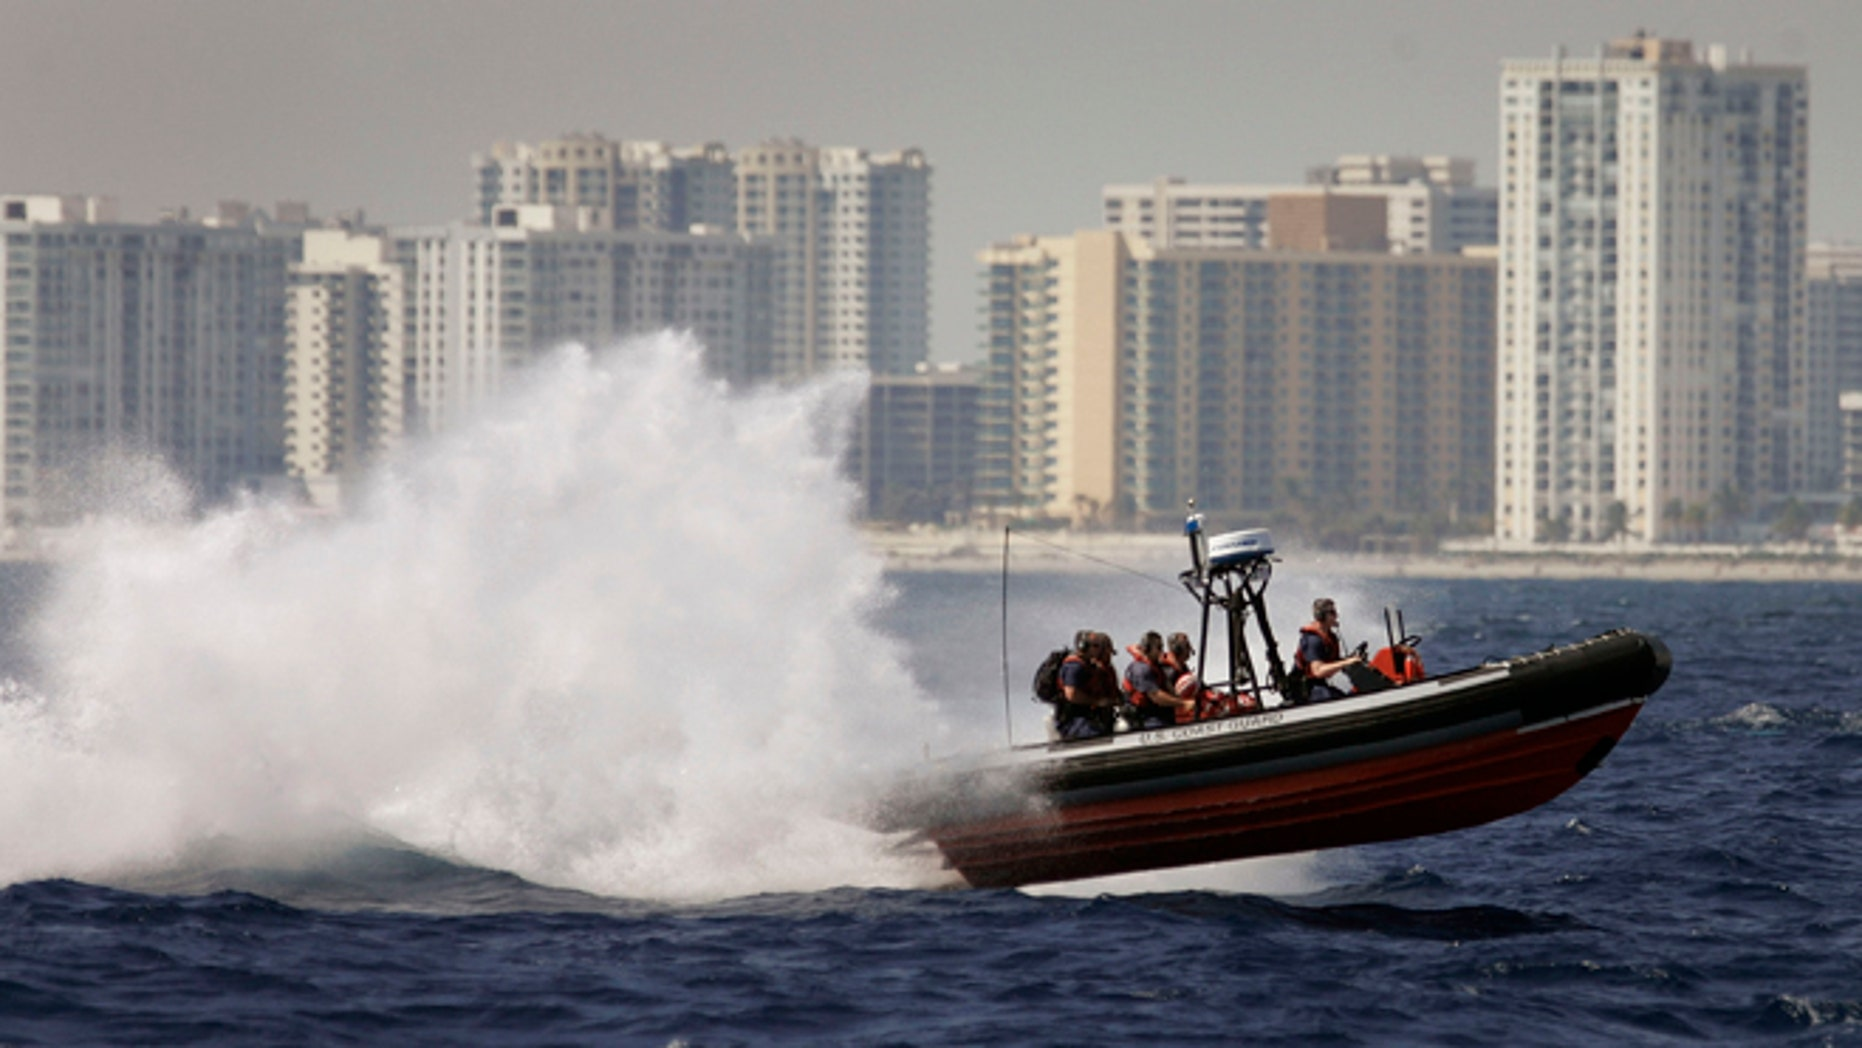 A U.S. Coast Guard boat participates in the Homeland Security Task Force Southeast  mass migration drill March 8, 2007 off the shore of  Miami, Florida. (Photo by Joe Raedle/Getty Images)